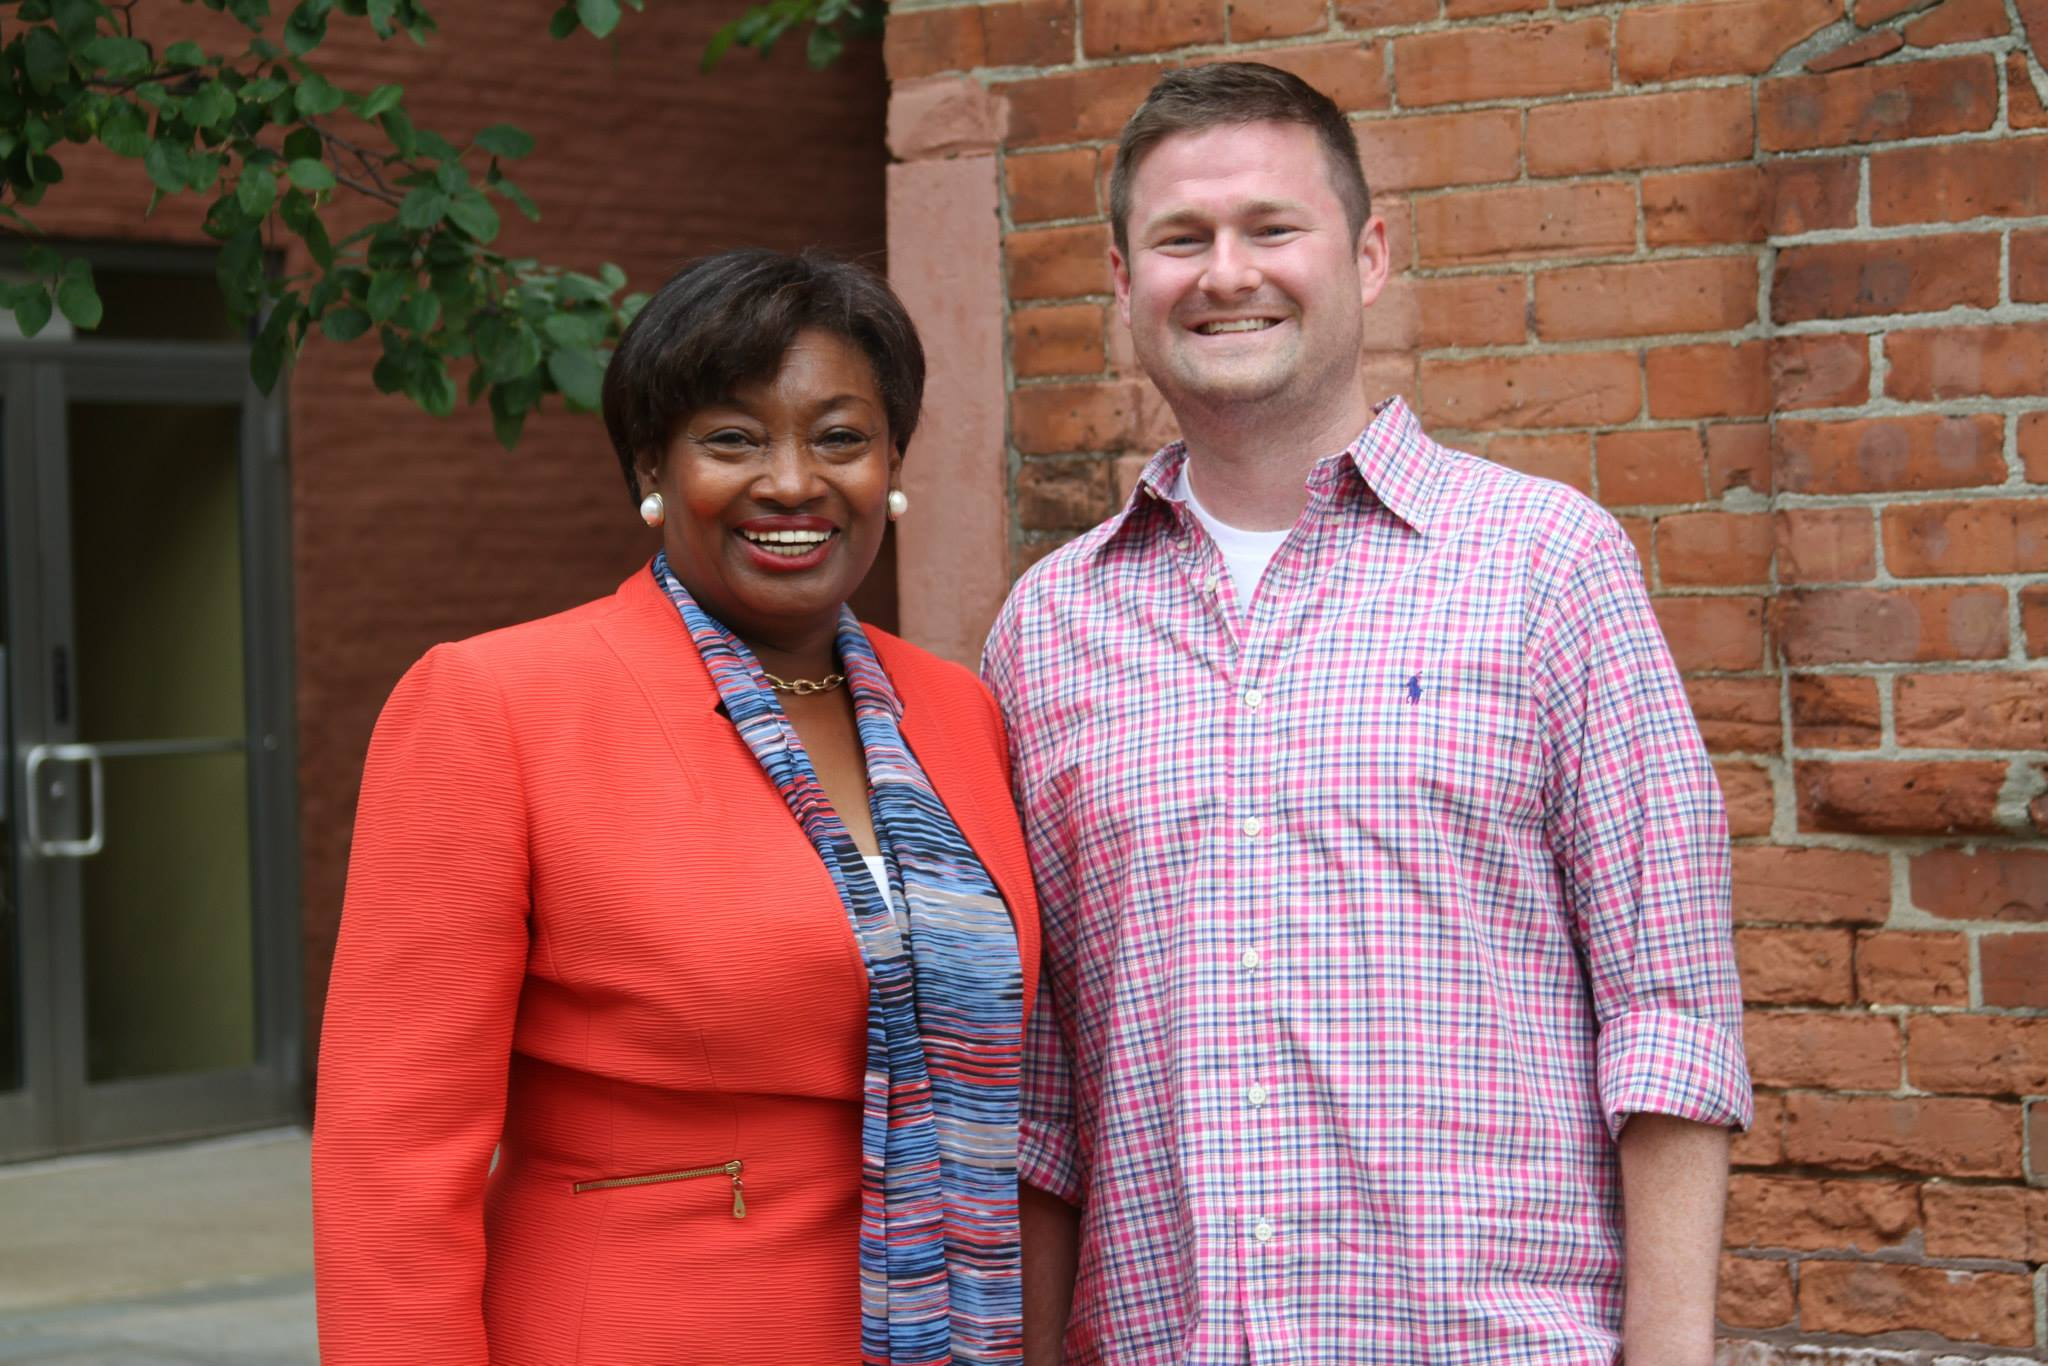 Pat with New York State Senator Andrea Stewart-Cousins. (Photo: Facebook / Quinn 4 the Win)